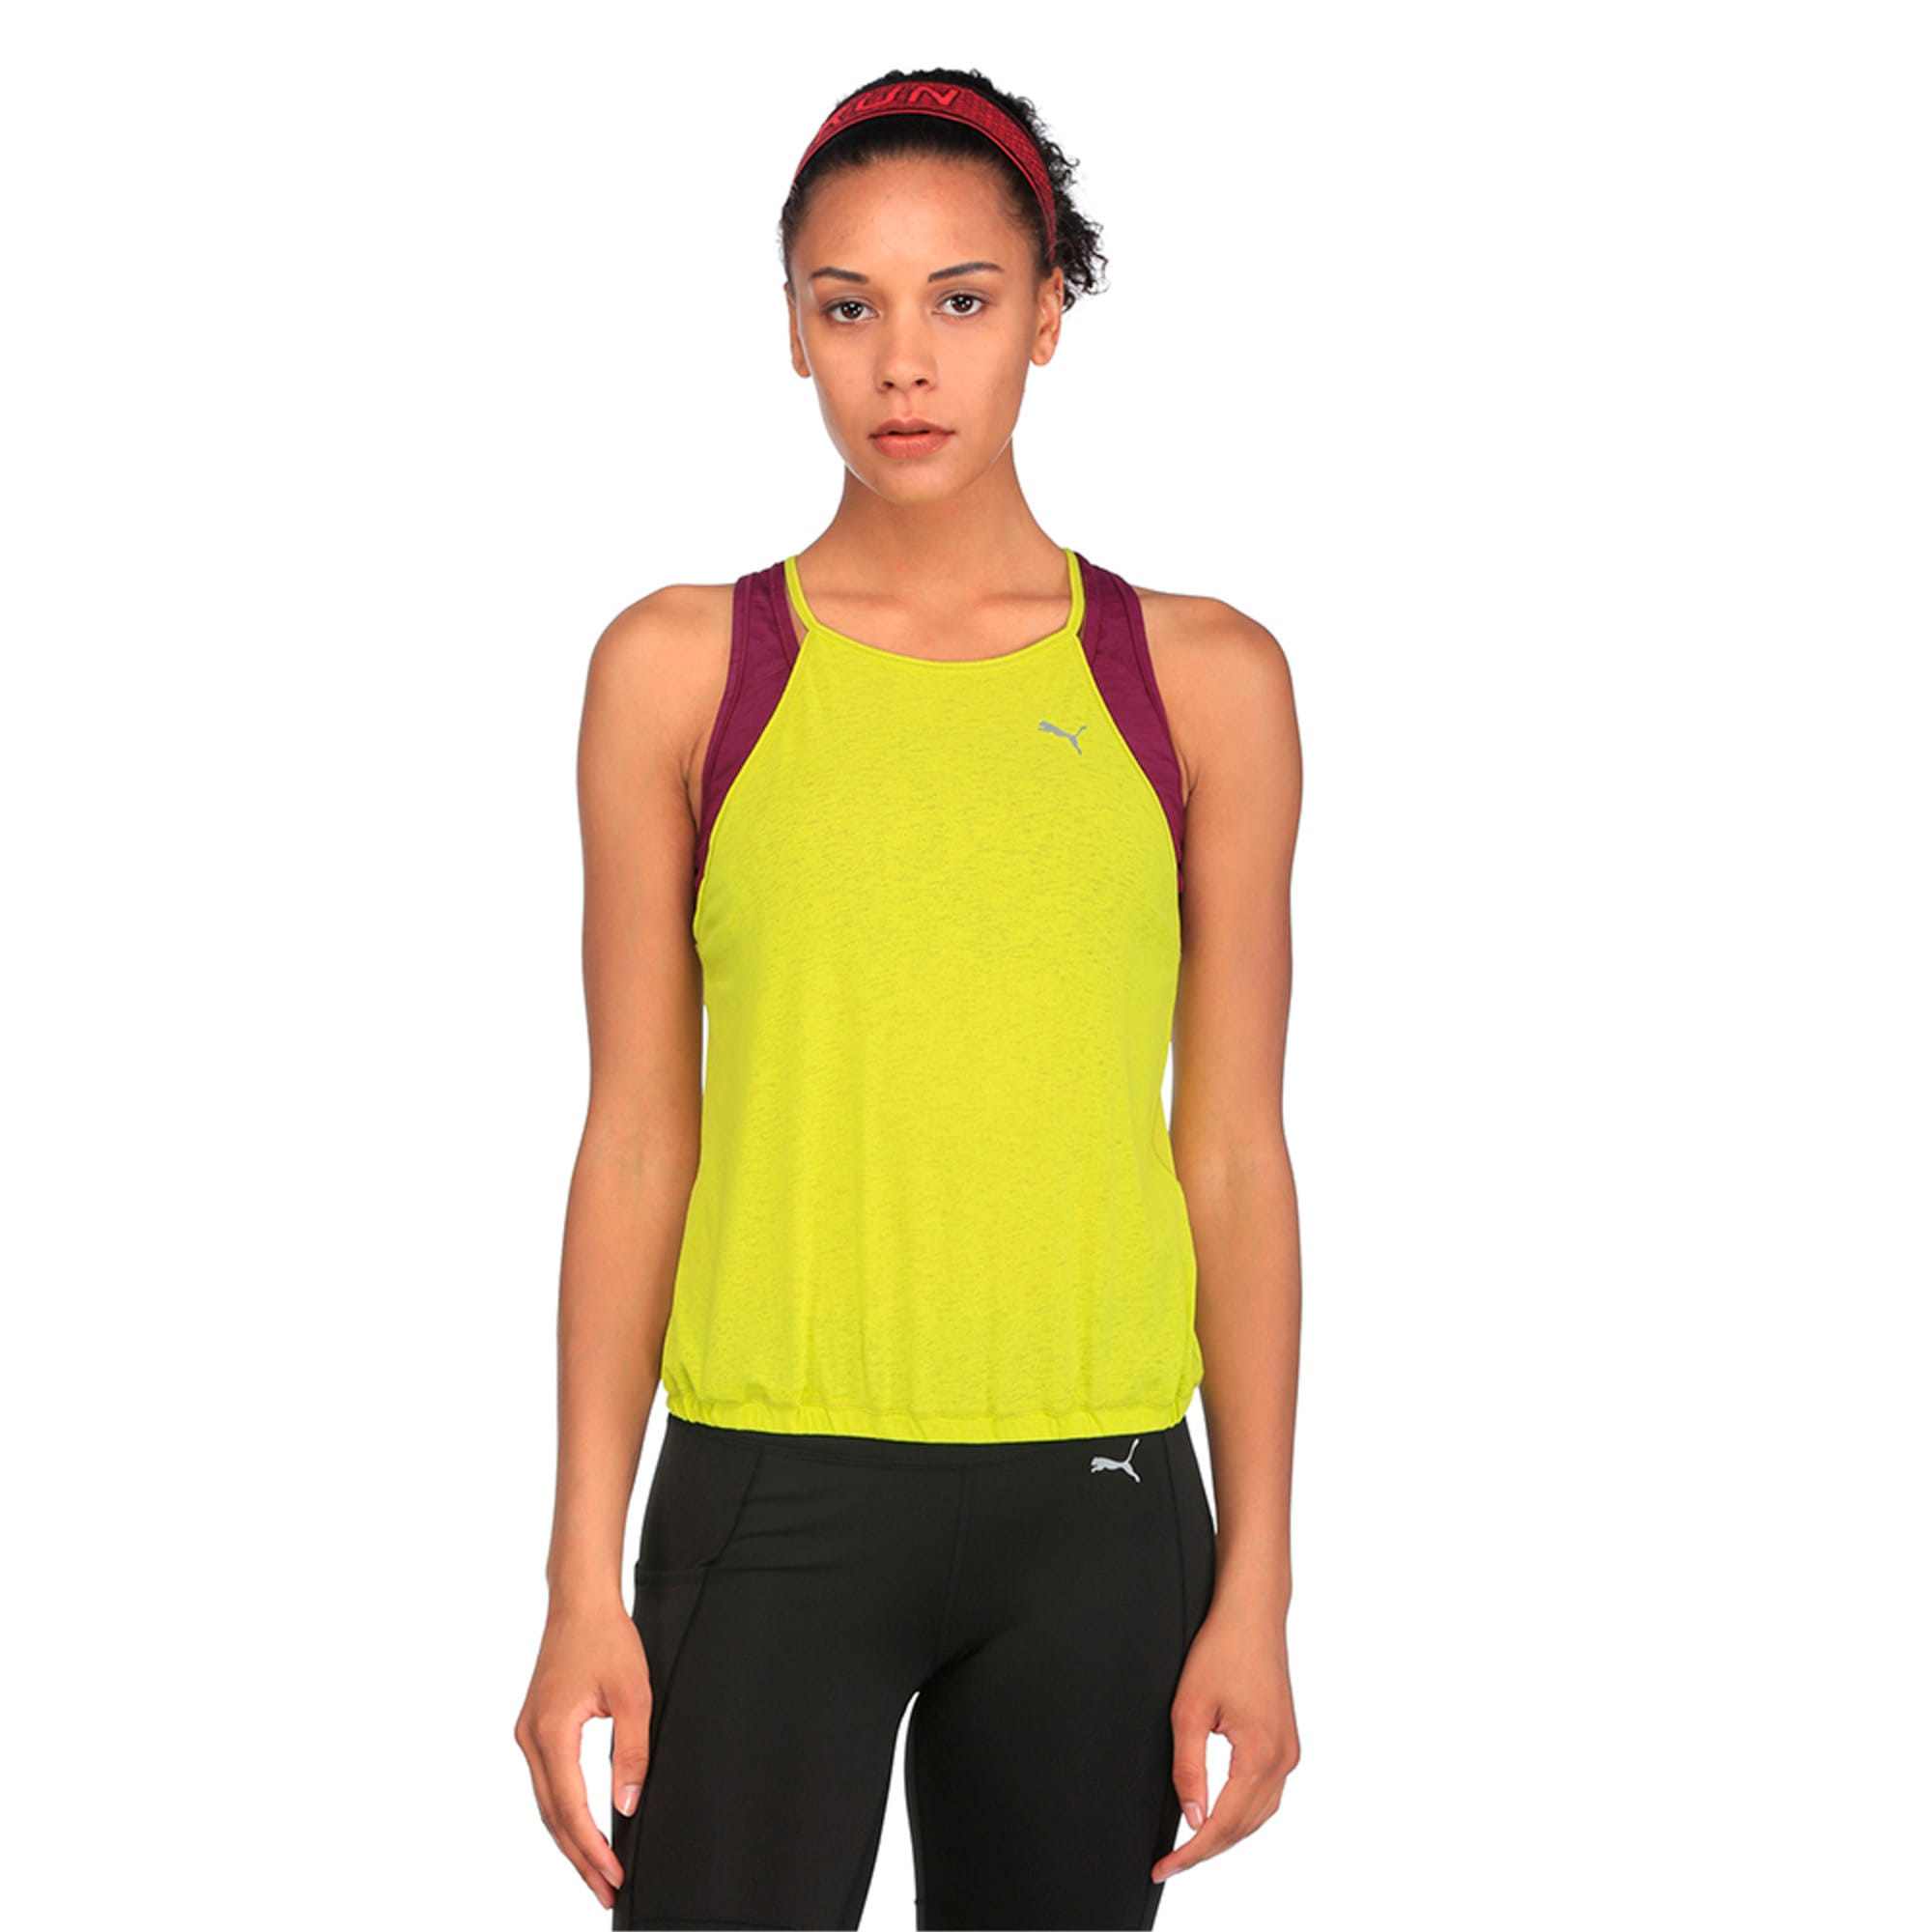 Thumbnail 5 of Active Training Women's Dancer Drapey Solid Tank Top, Nrgy Yellow, medium-IND